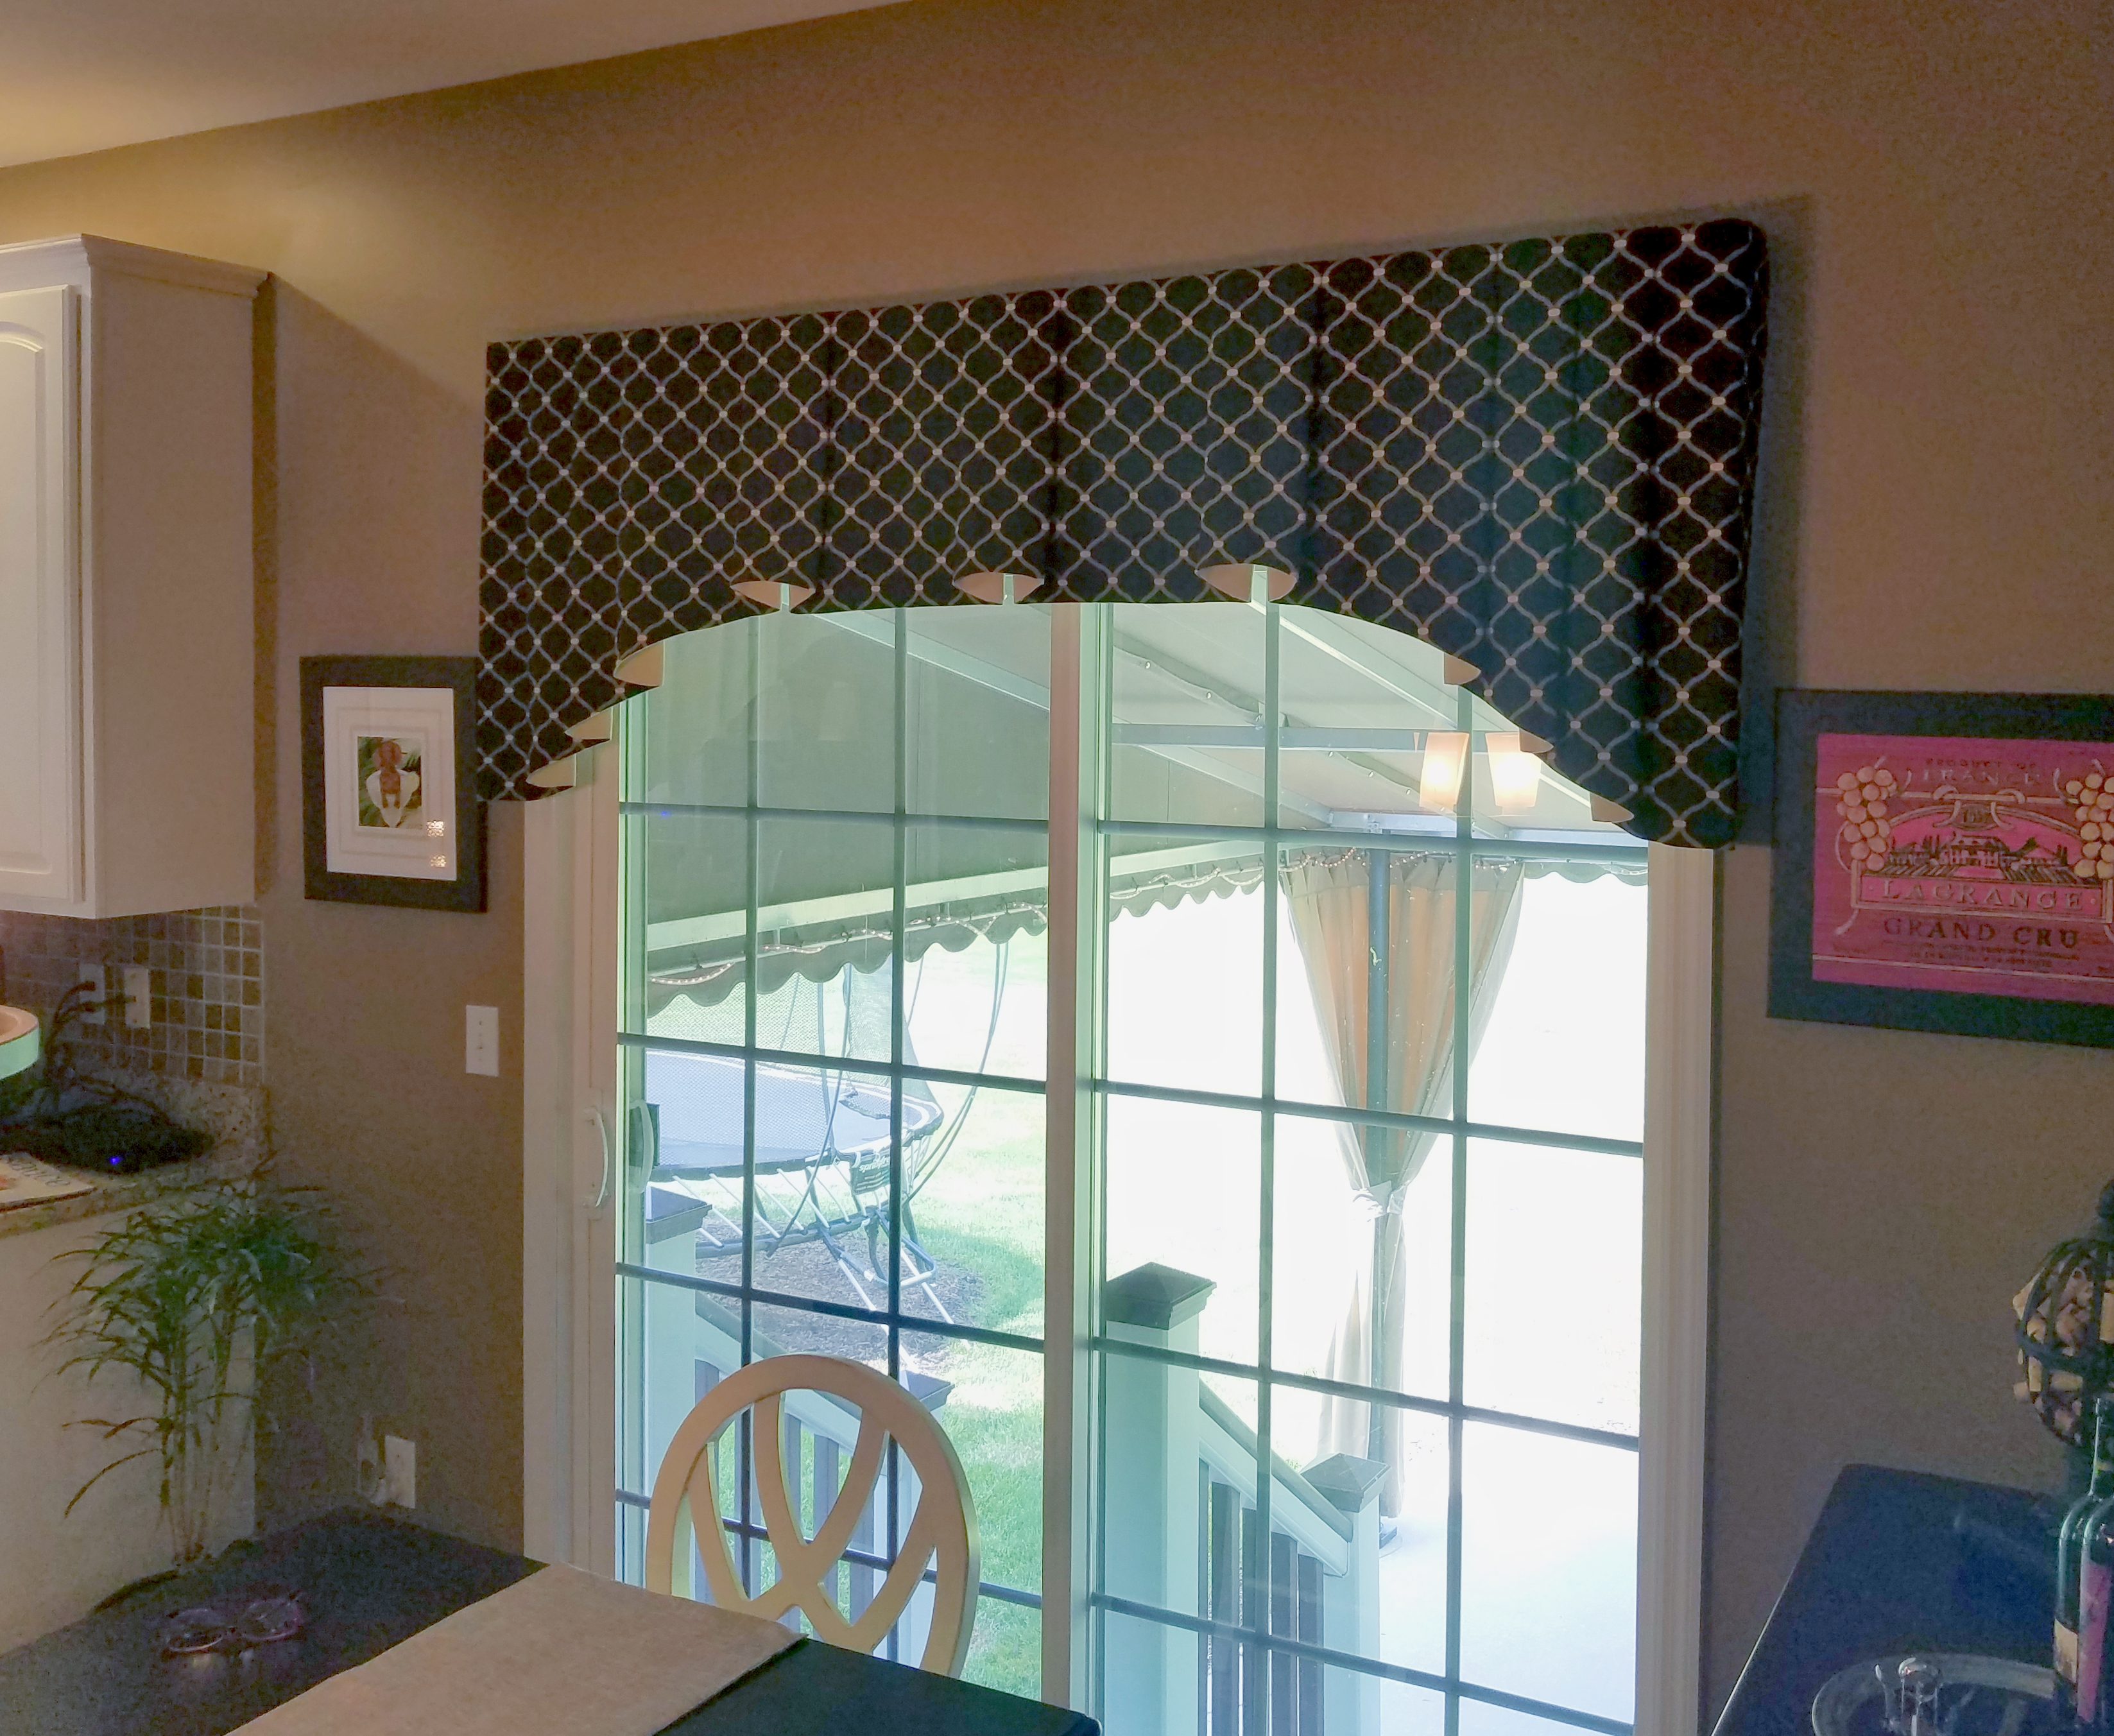 Custom Made Valance Over Sliding Gl Door With Matching Kitchen Window To Compliment The Look And Feel Of These Adjoining Rooms